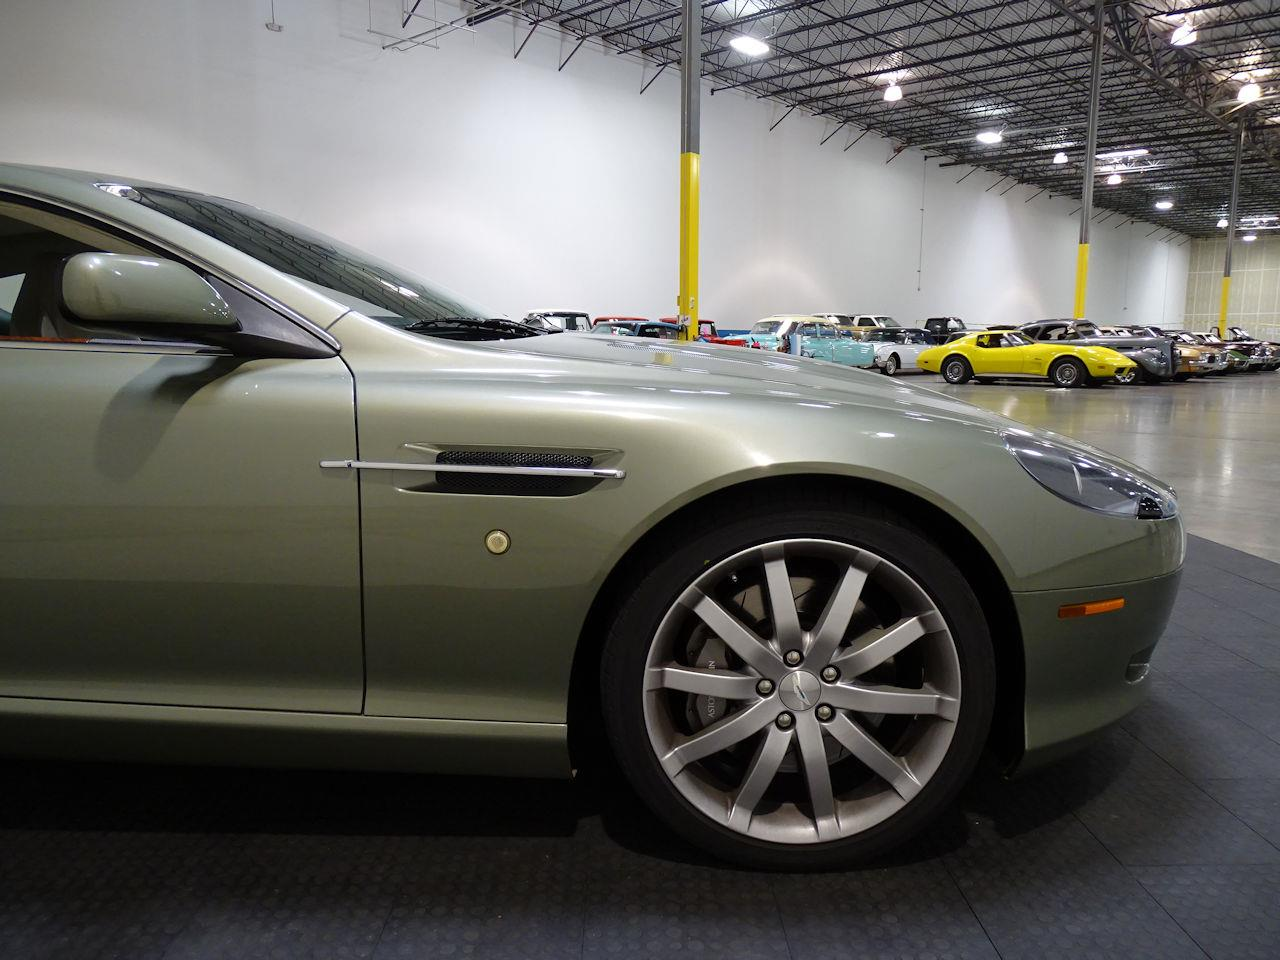 Large Picture of '05 Aston Martin DB9 located in Houston Texas - $58,000.00 Offered by Gateway Classic Cars - Houston - L7ZM